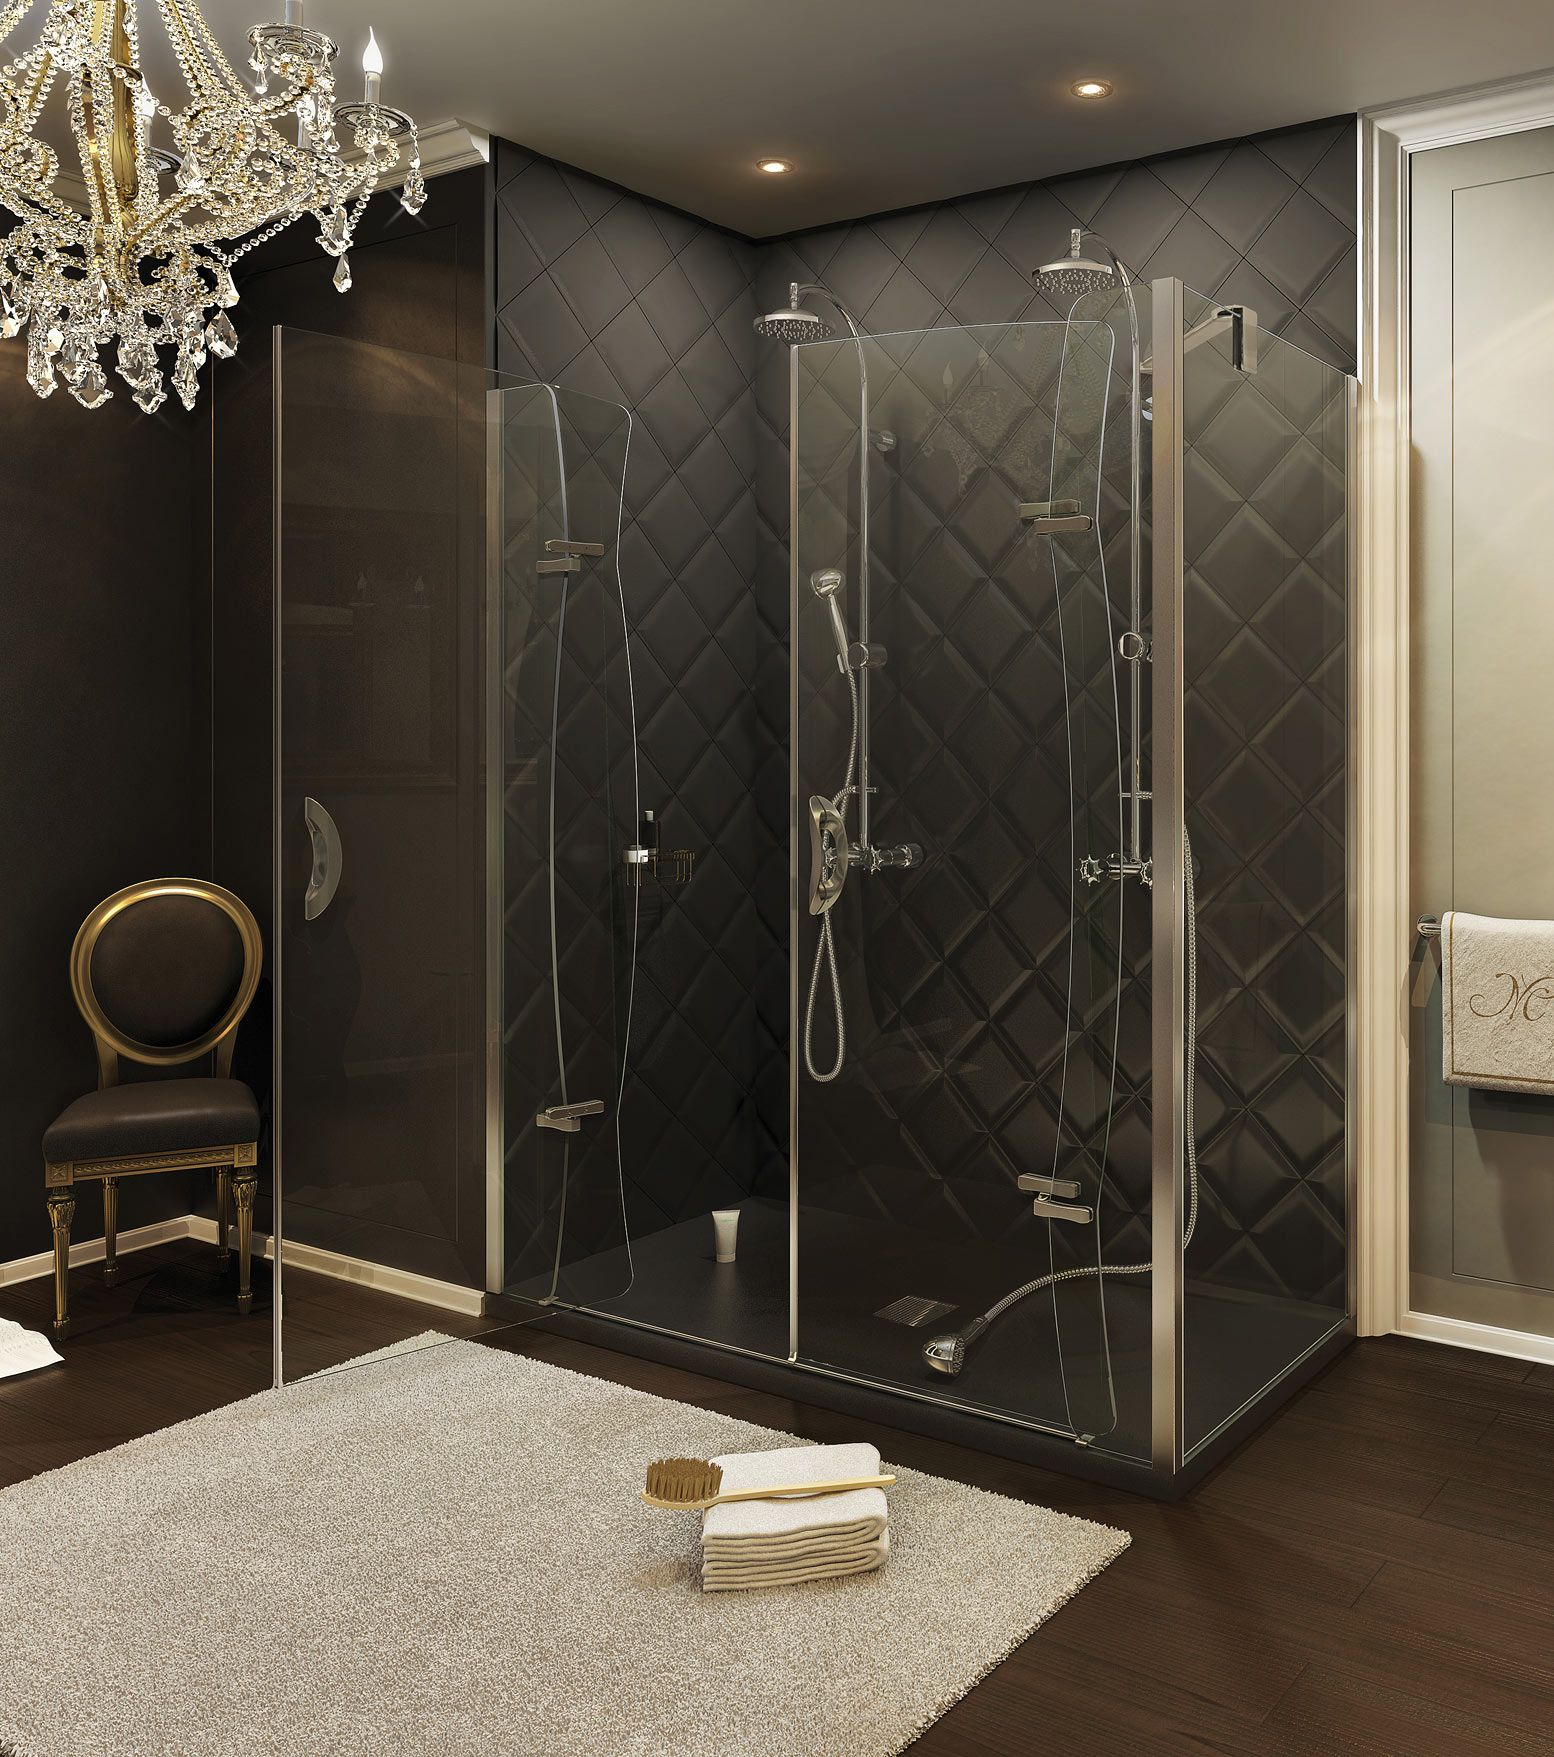 MAAX - PurfectKurv Corner Shower Door www.maax.com #Shower #Bathroom ...